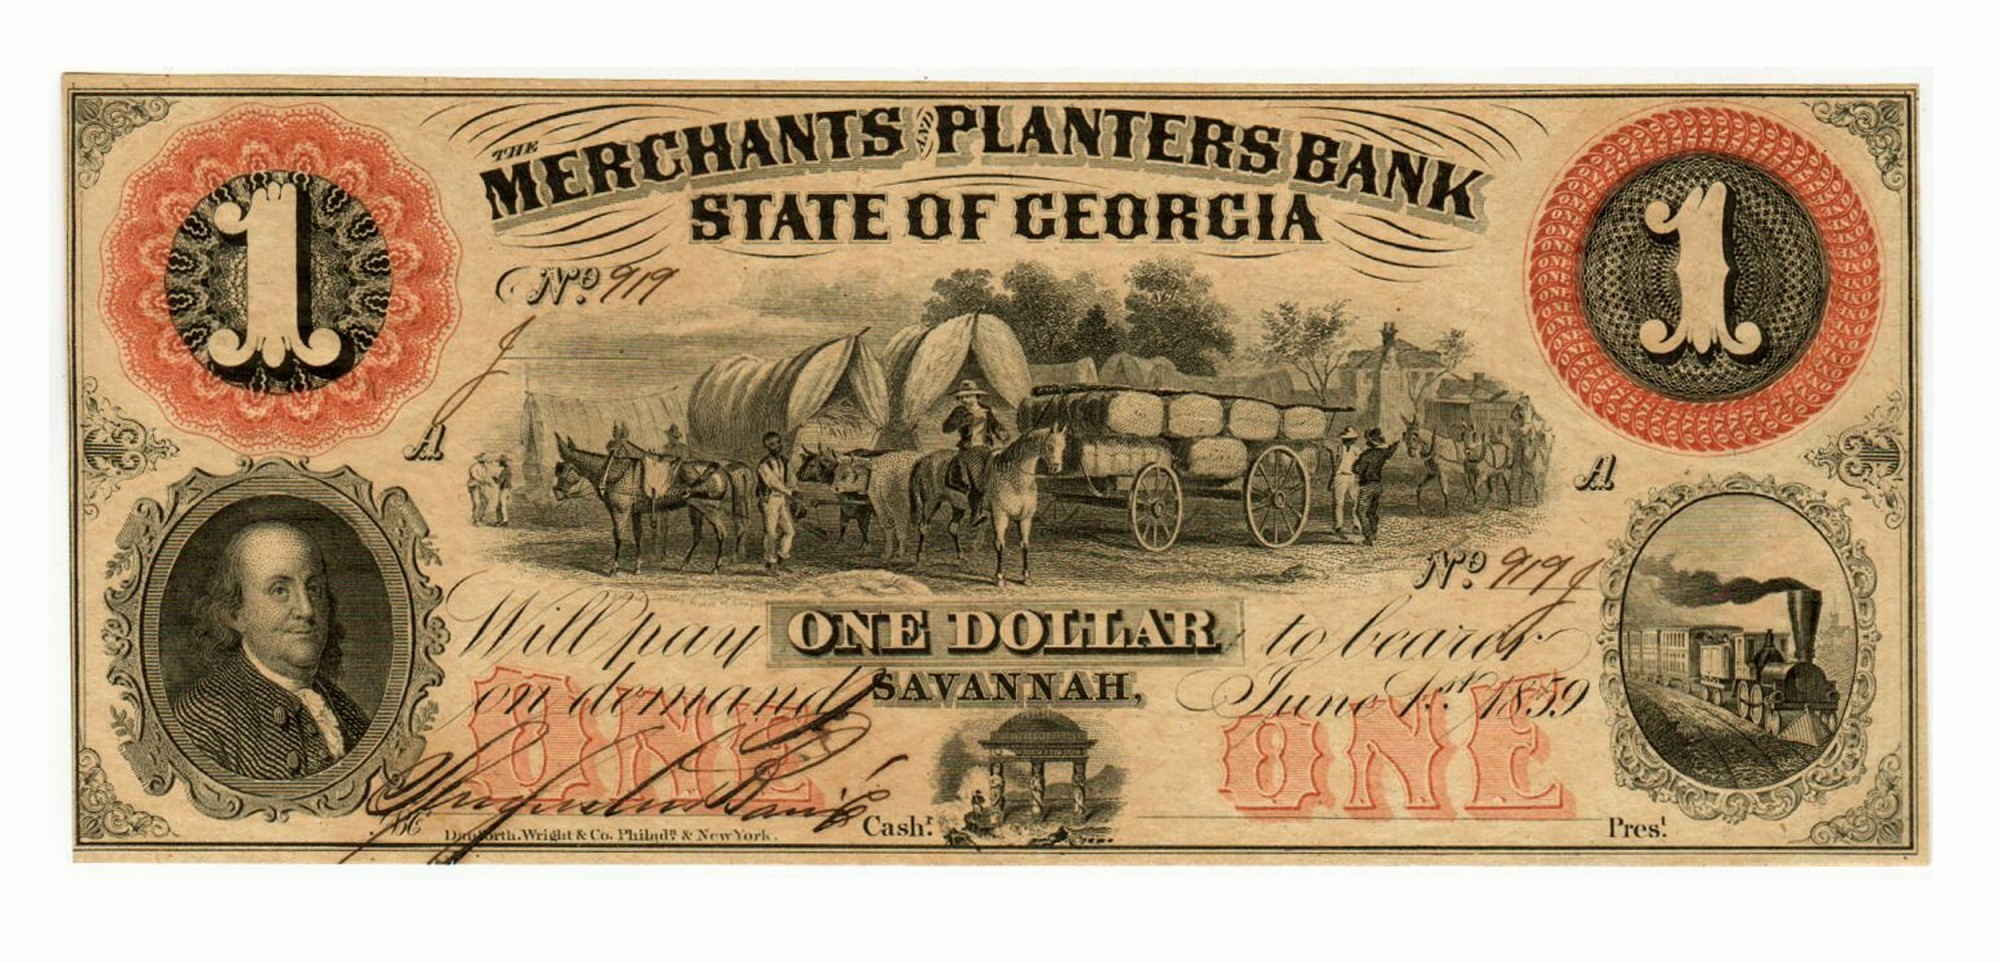 STATE OF GEORGIA MERCHANTS AND PLANTERS BANK $1 NOTE